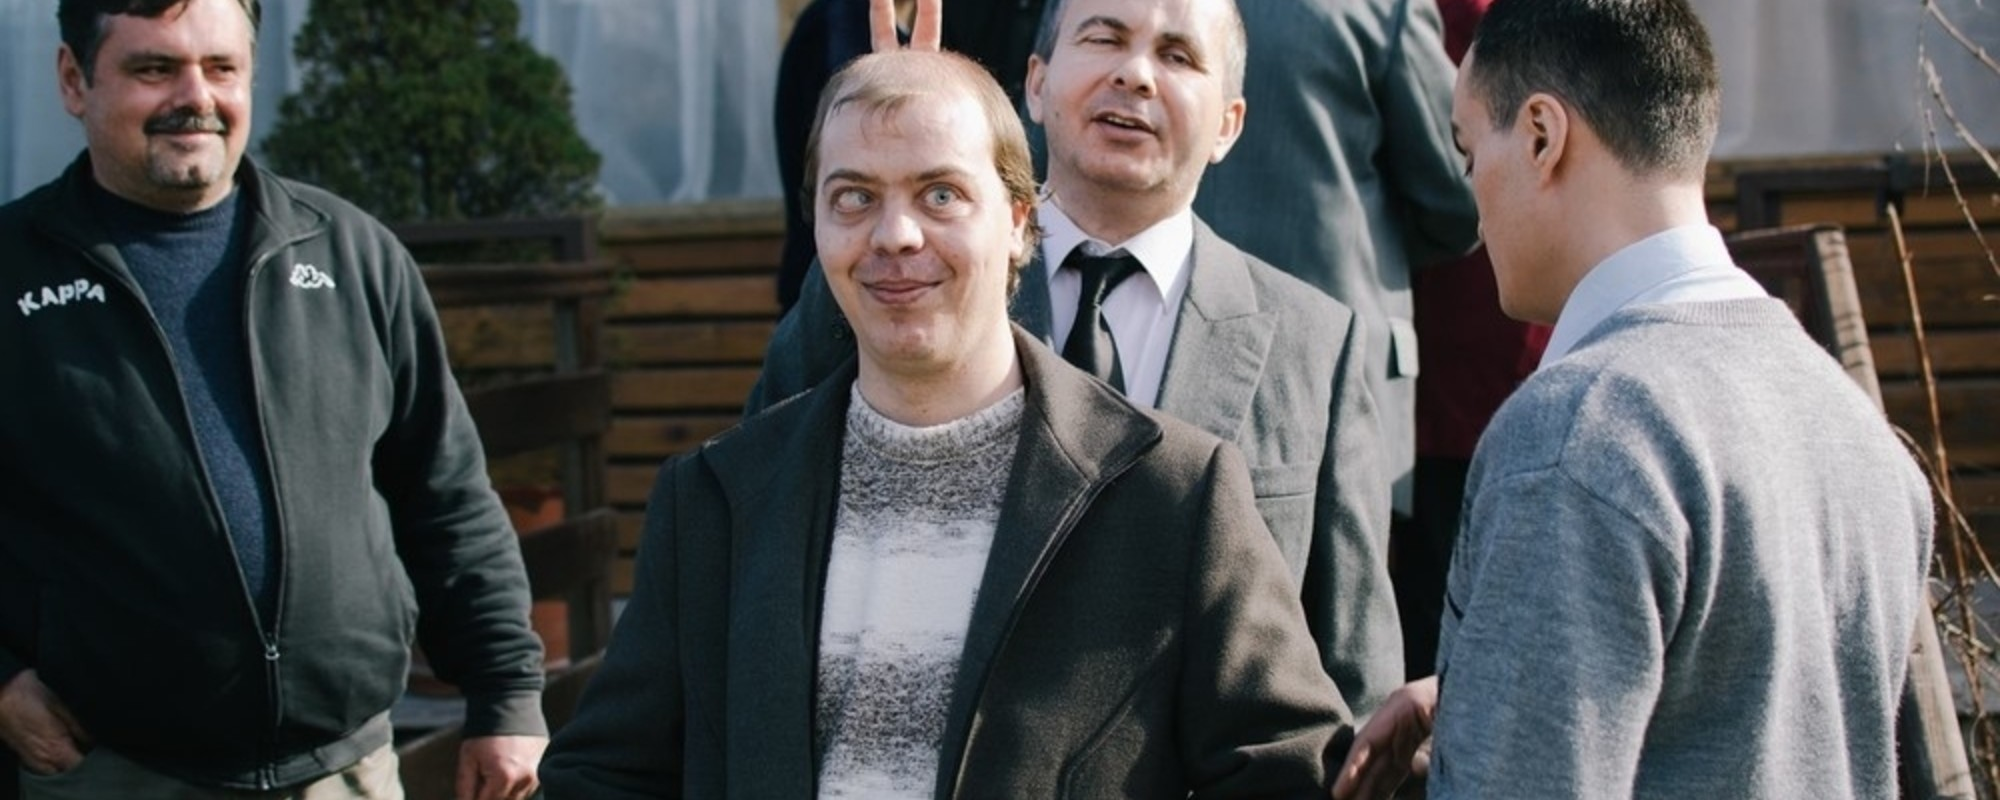 The Blind Photobombing the Blind: The Lives of Romania's Visually Impaired